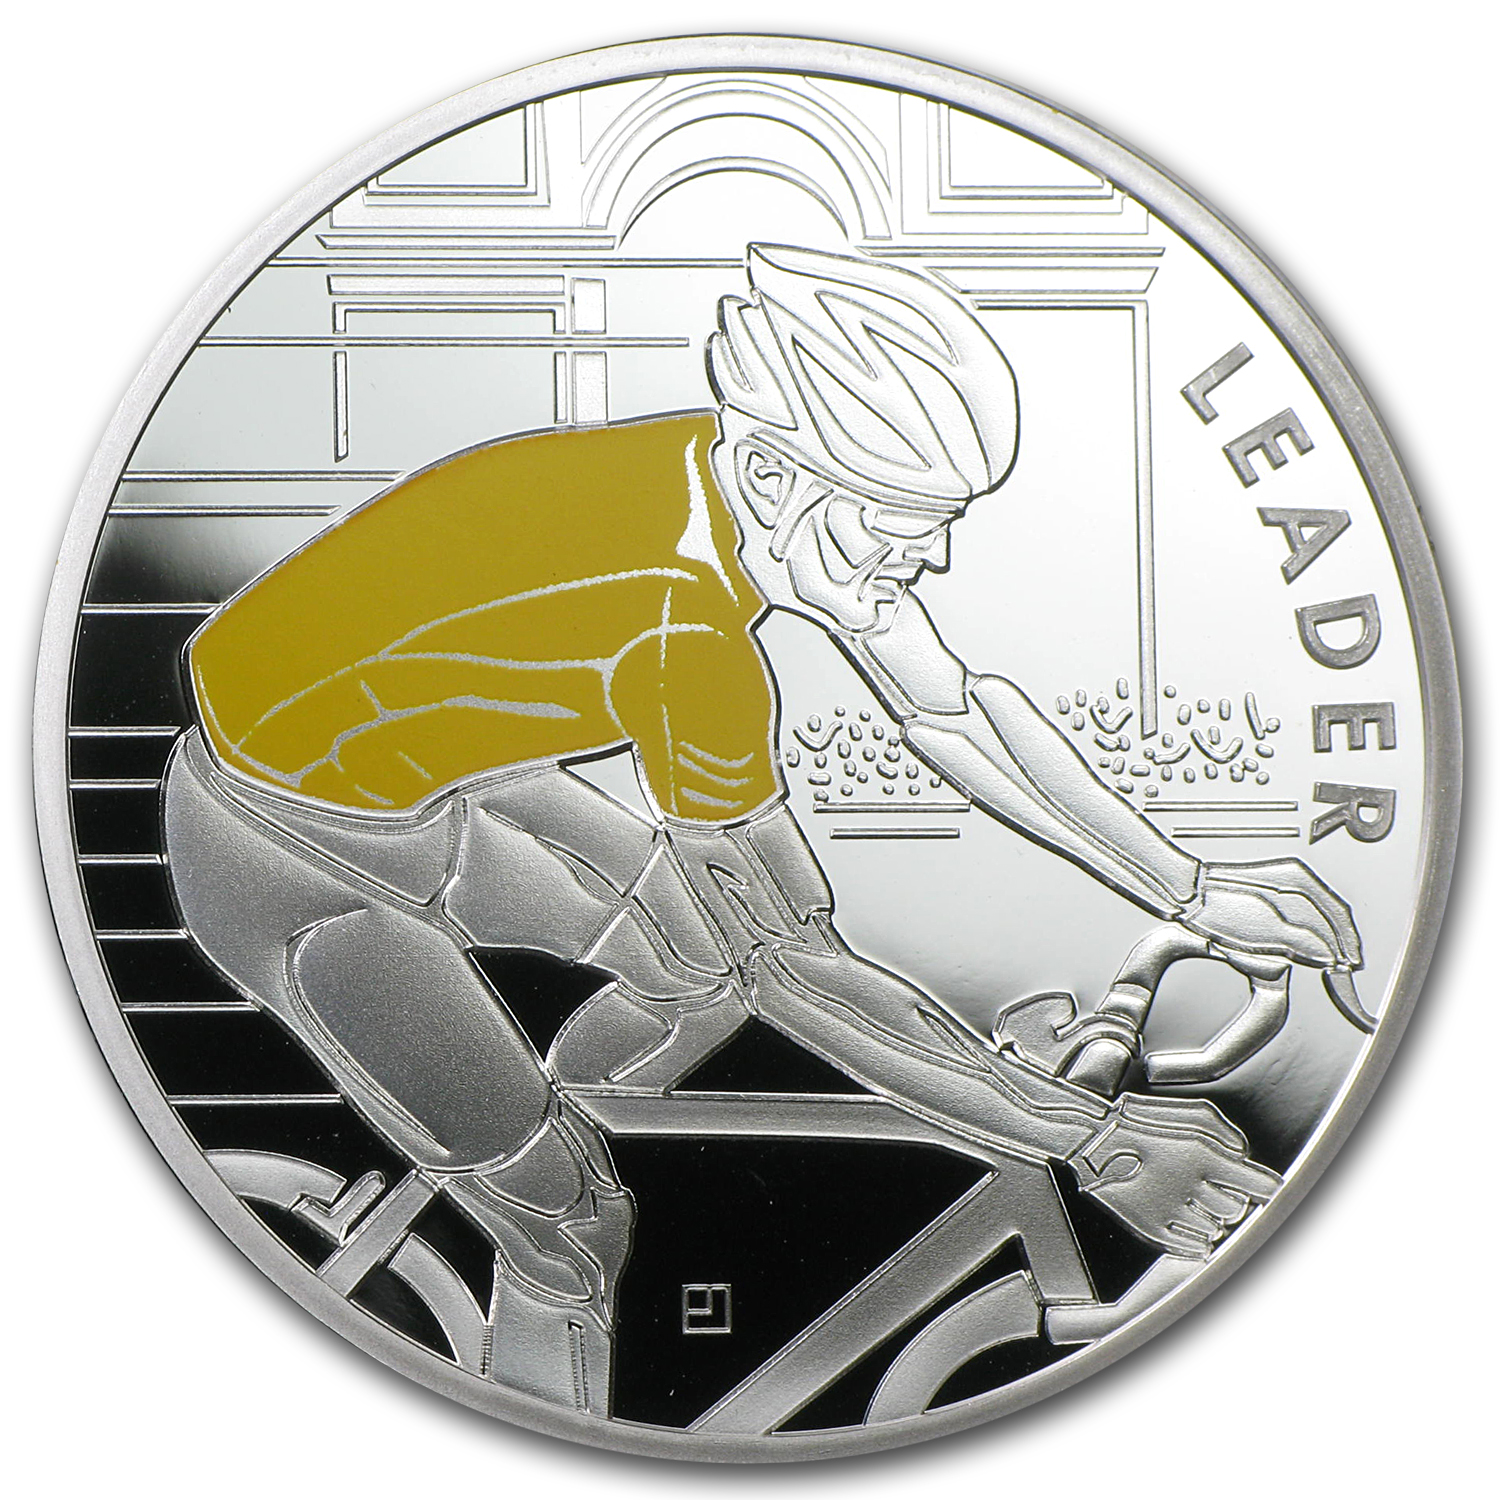 2013 4-Coin Silver €10 100th Edition Tour de France Proof Set